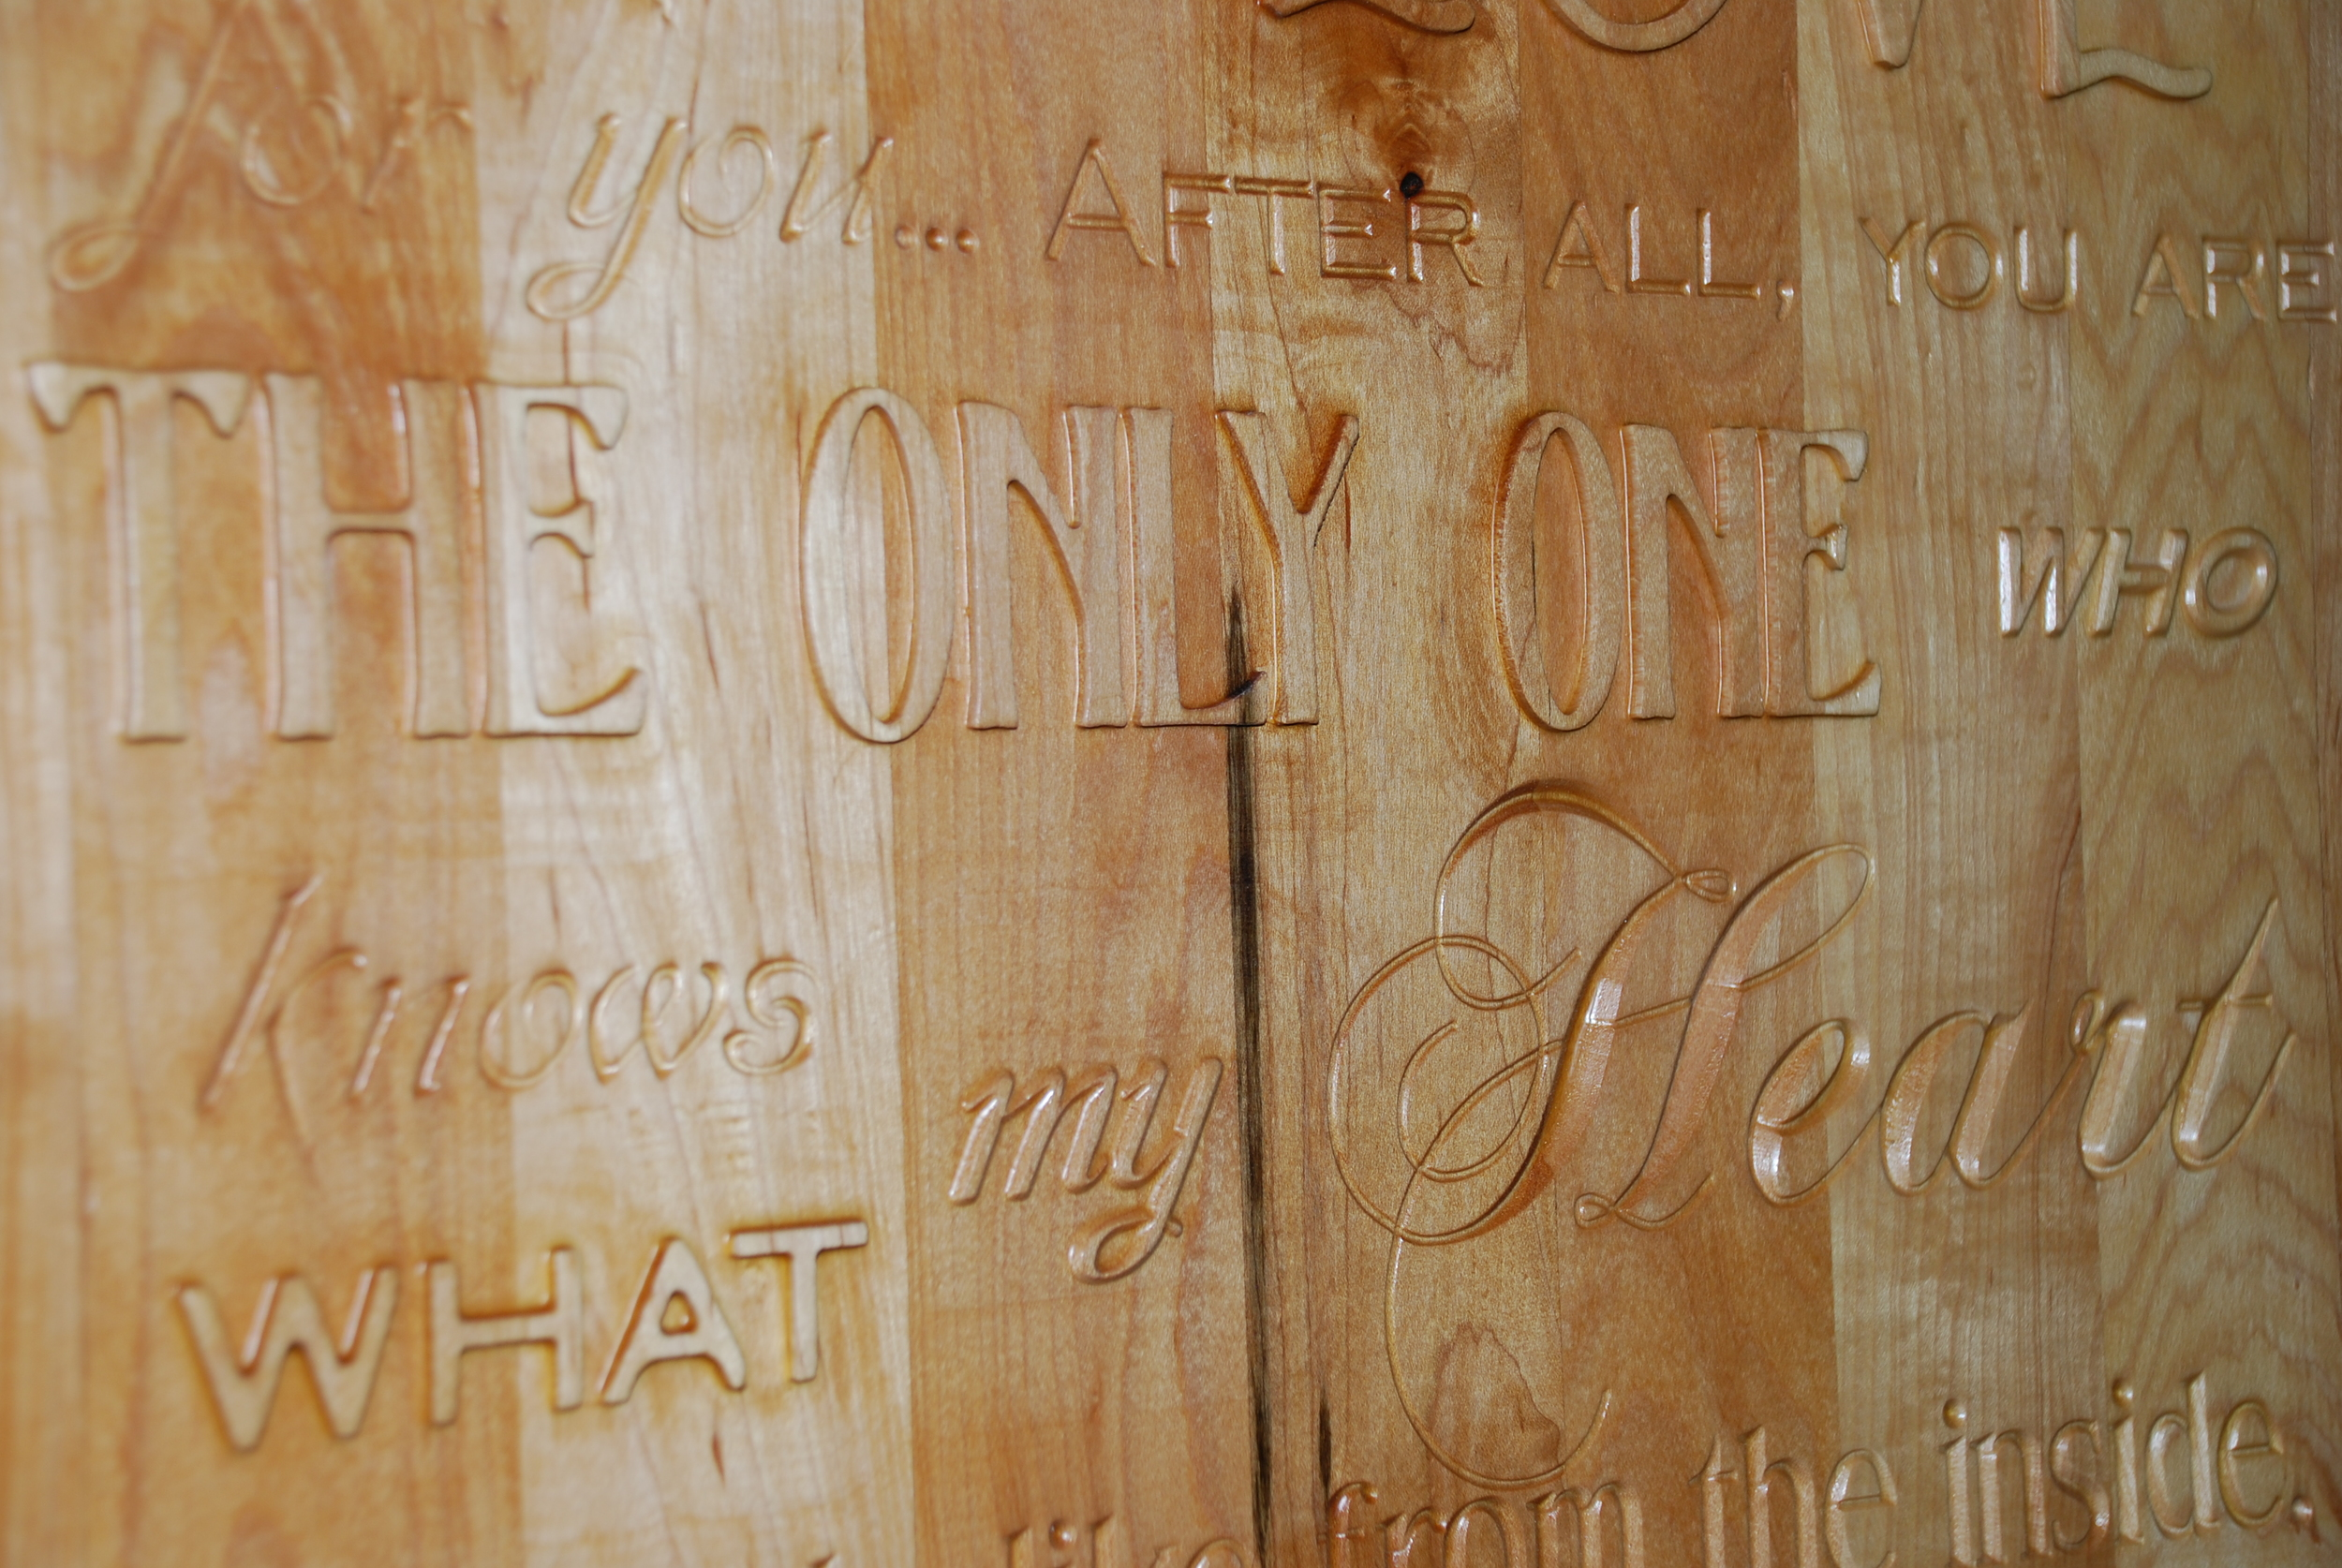 This is a close-up of the Pocketing and V-carving techniques that were used on the sign to the left of this picture.